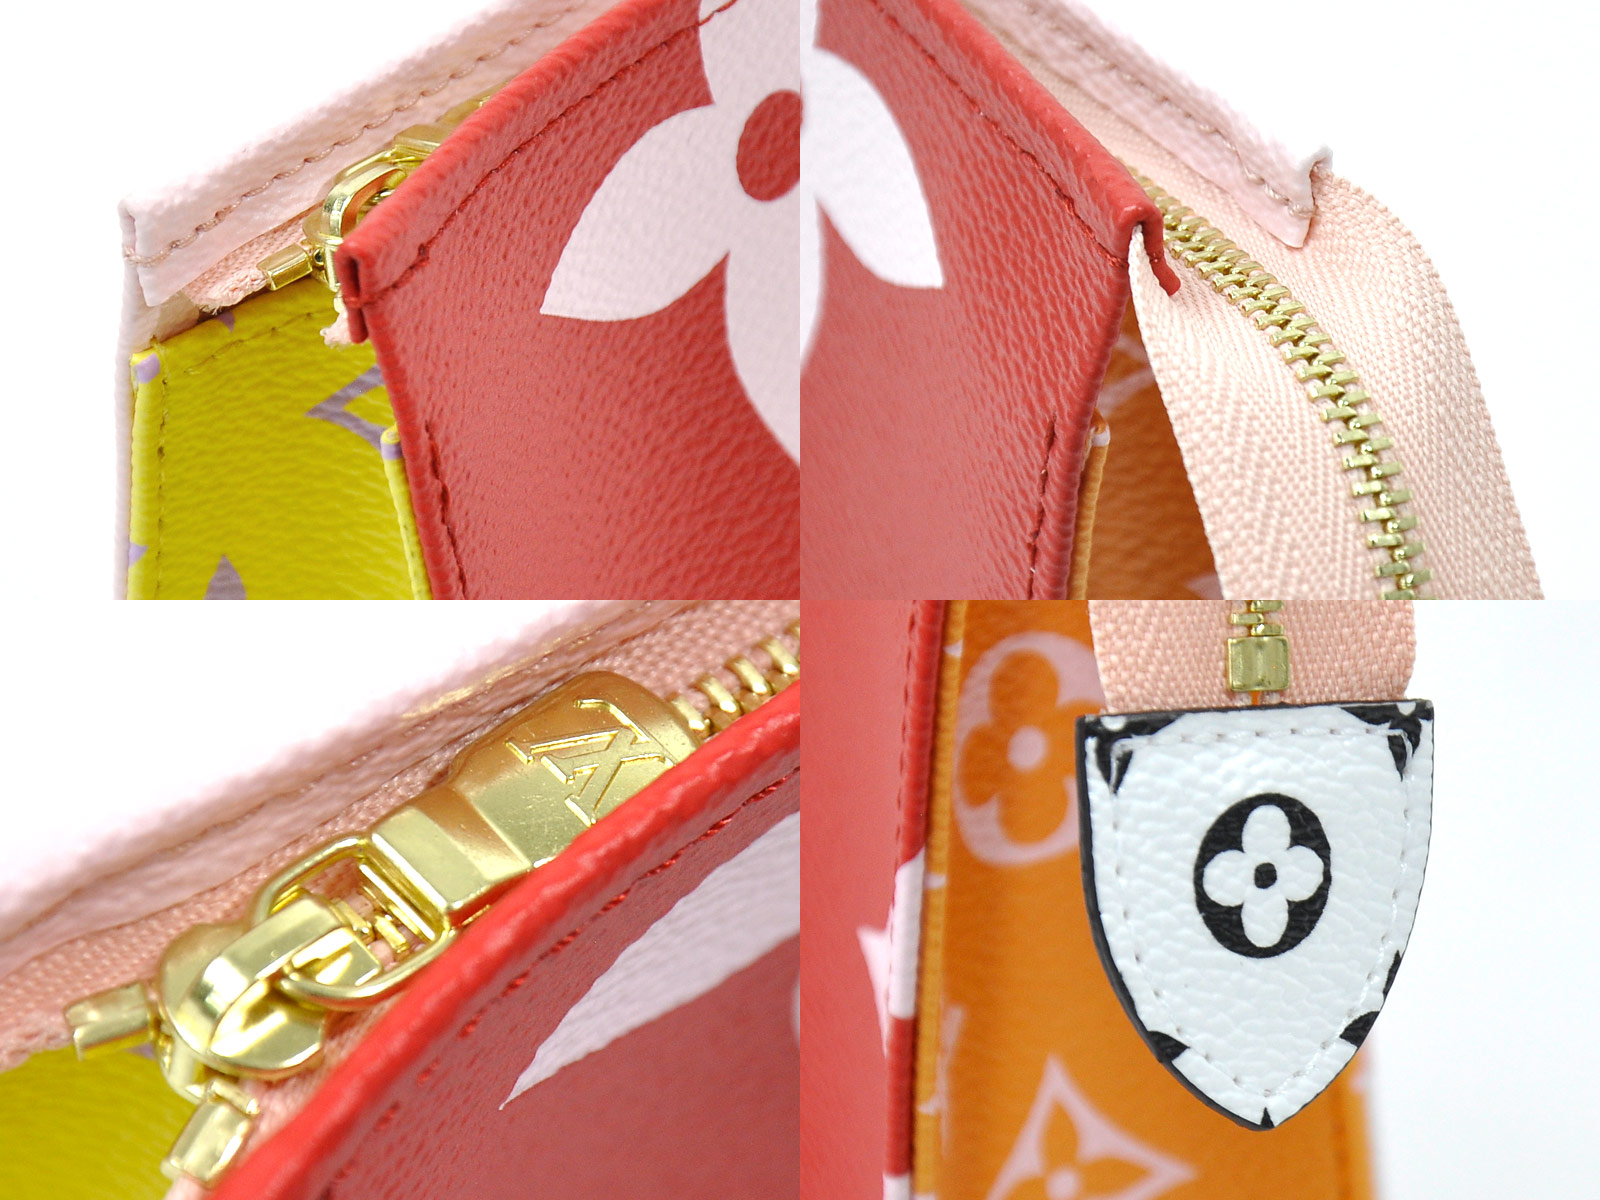 Auth-Louis-Vuitton-Monogram-Giant-Pochette-Toilette-Clutch-Bag-Rouge-Pink-96998 thumbnail 9